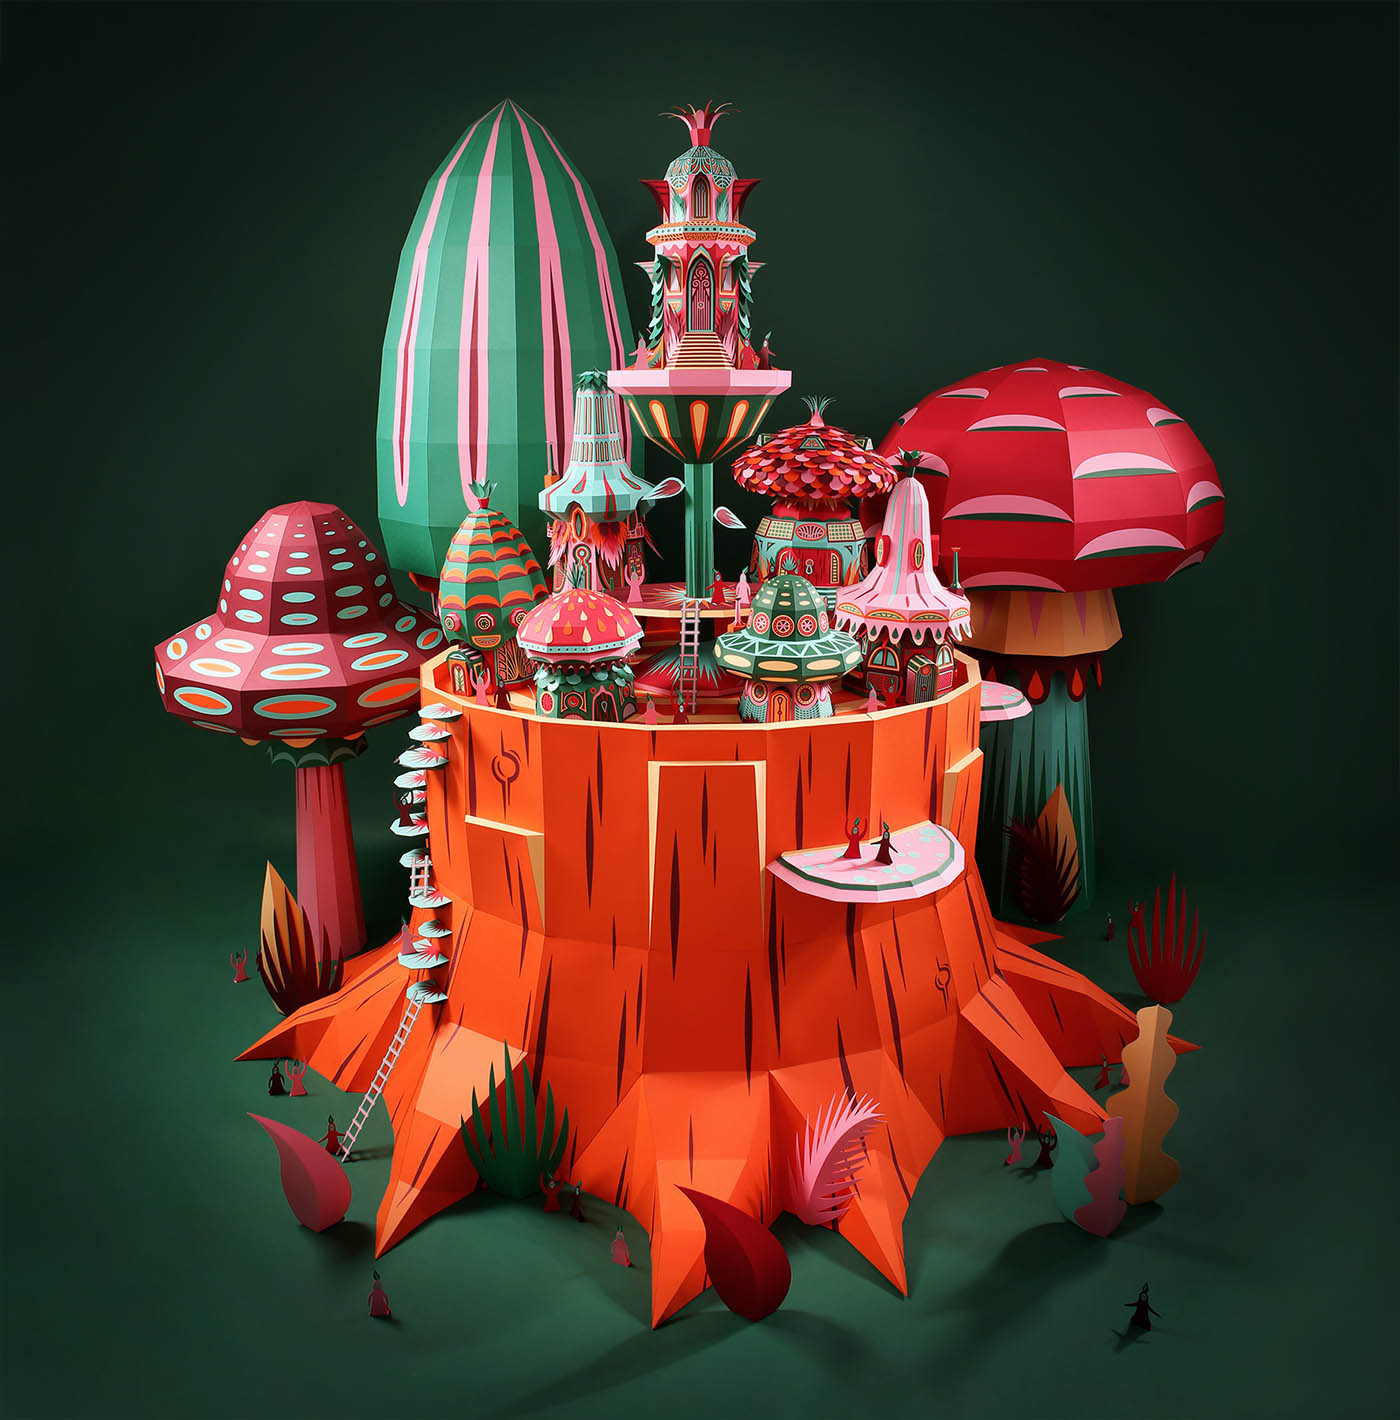 paper sculpture tiny world by zim zou